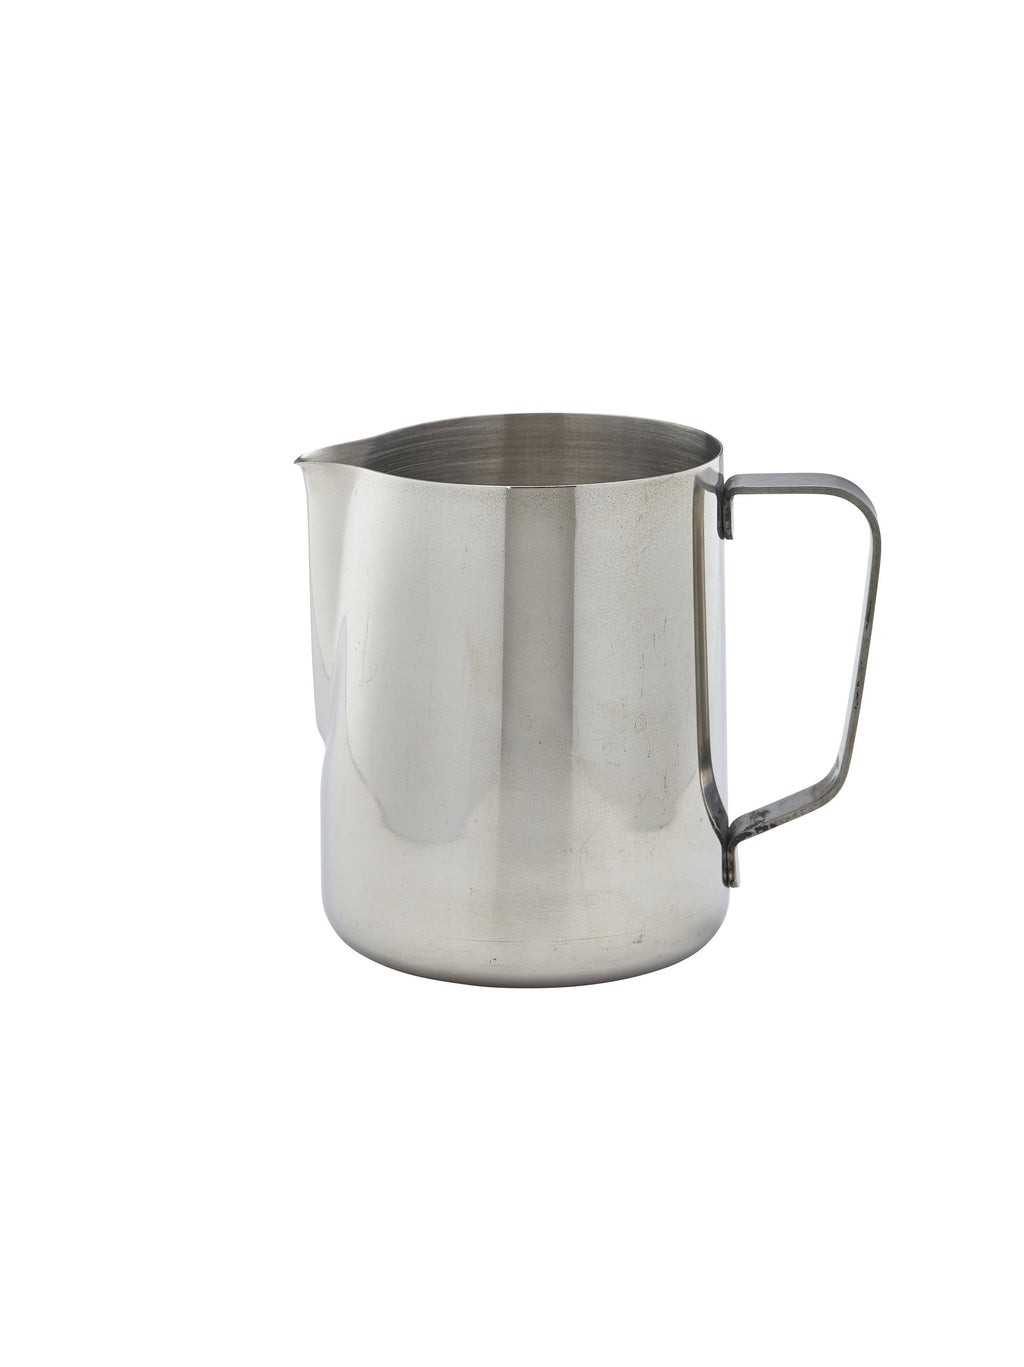 GenWare Stainless Steel Conical Jug 2L/70oz